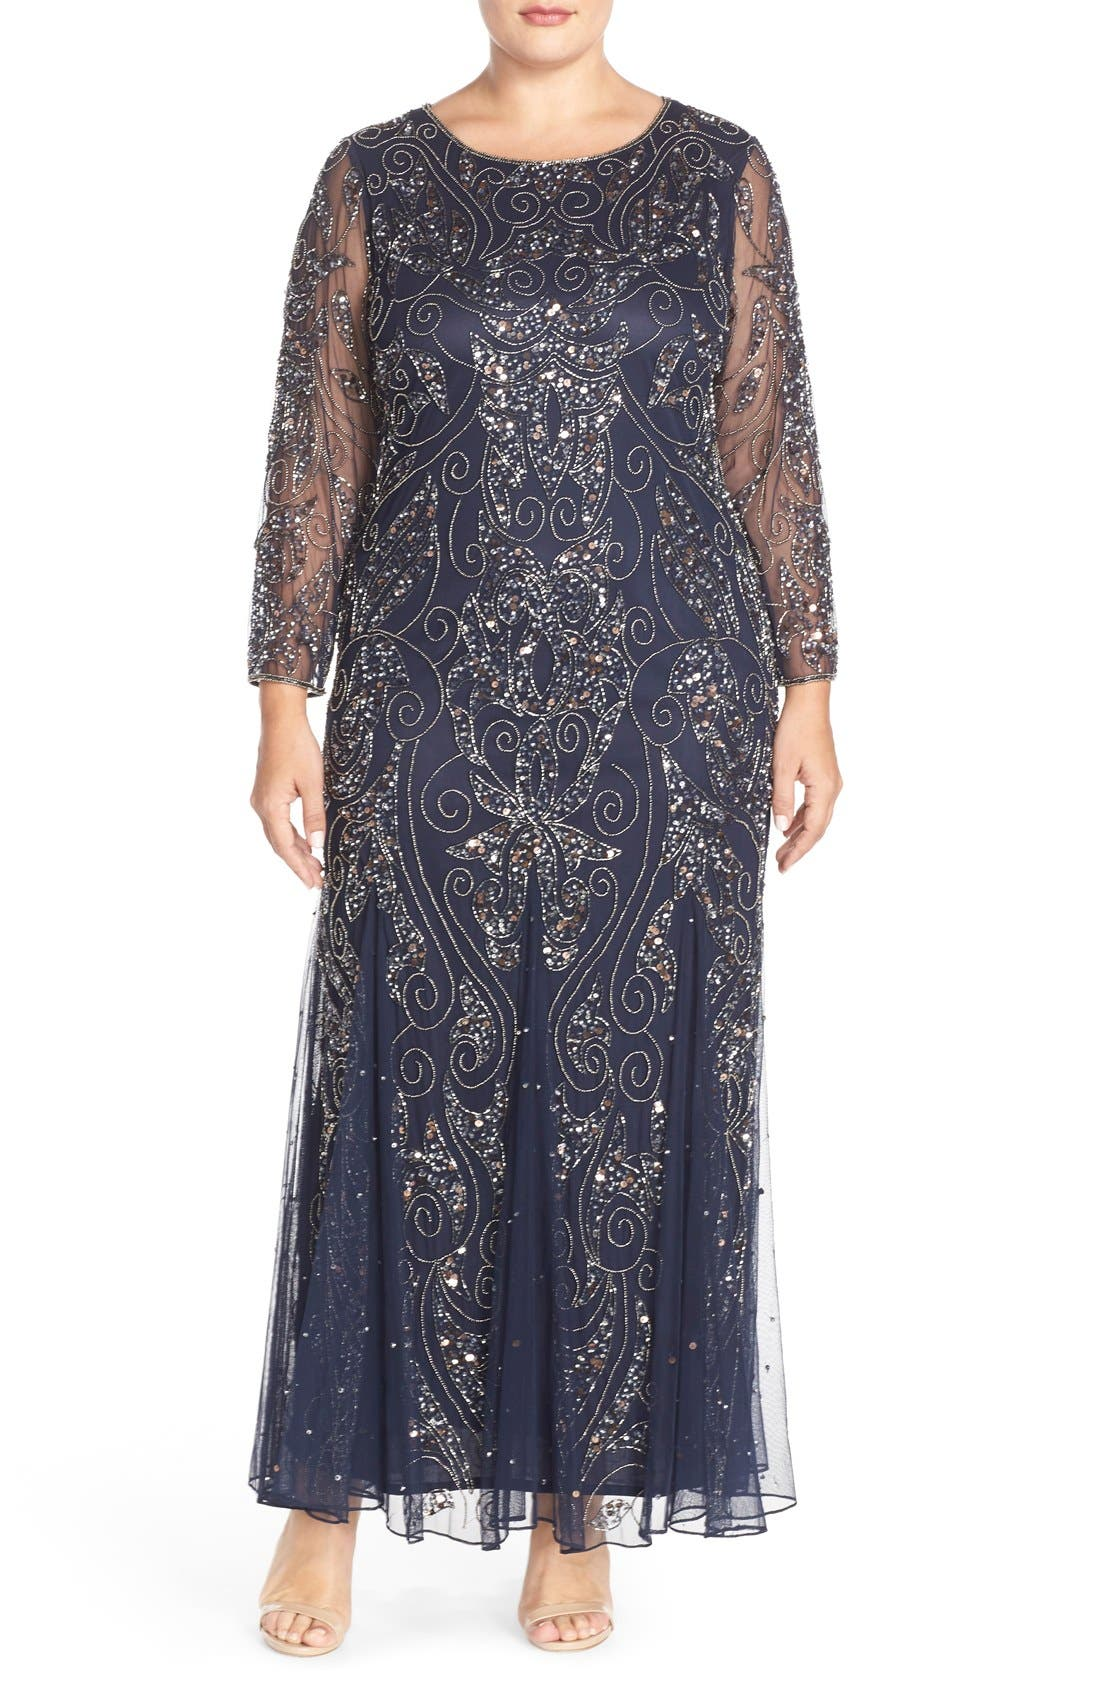 1920s Clothing Plus Size Womens Pisarro Nights Embellished Three Quarter Sleeve Gown Size 14W - Blue $238.00 AT vintagedancer.com